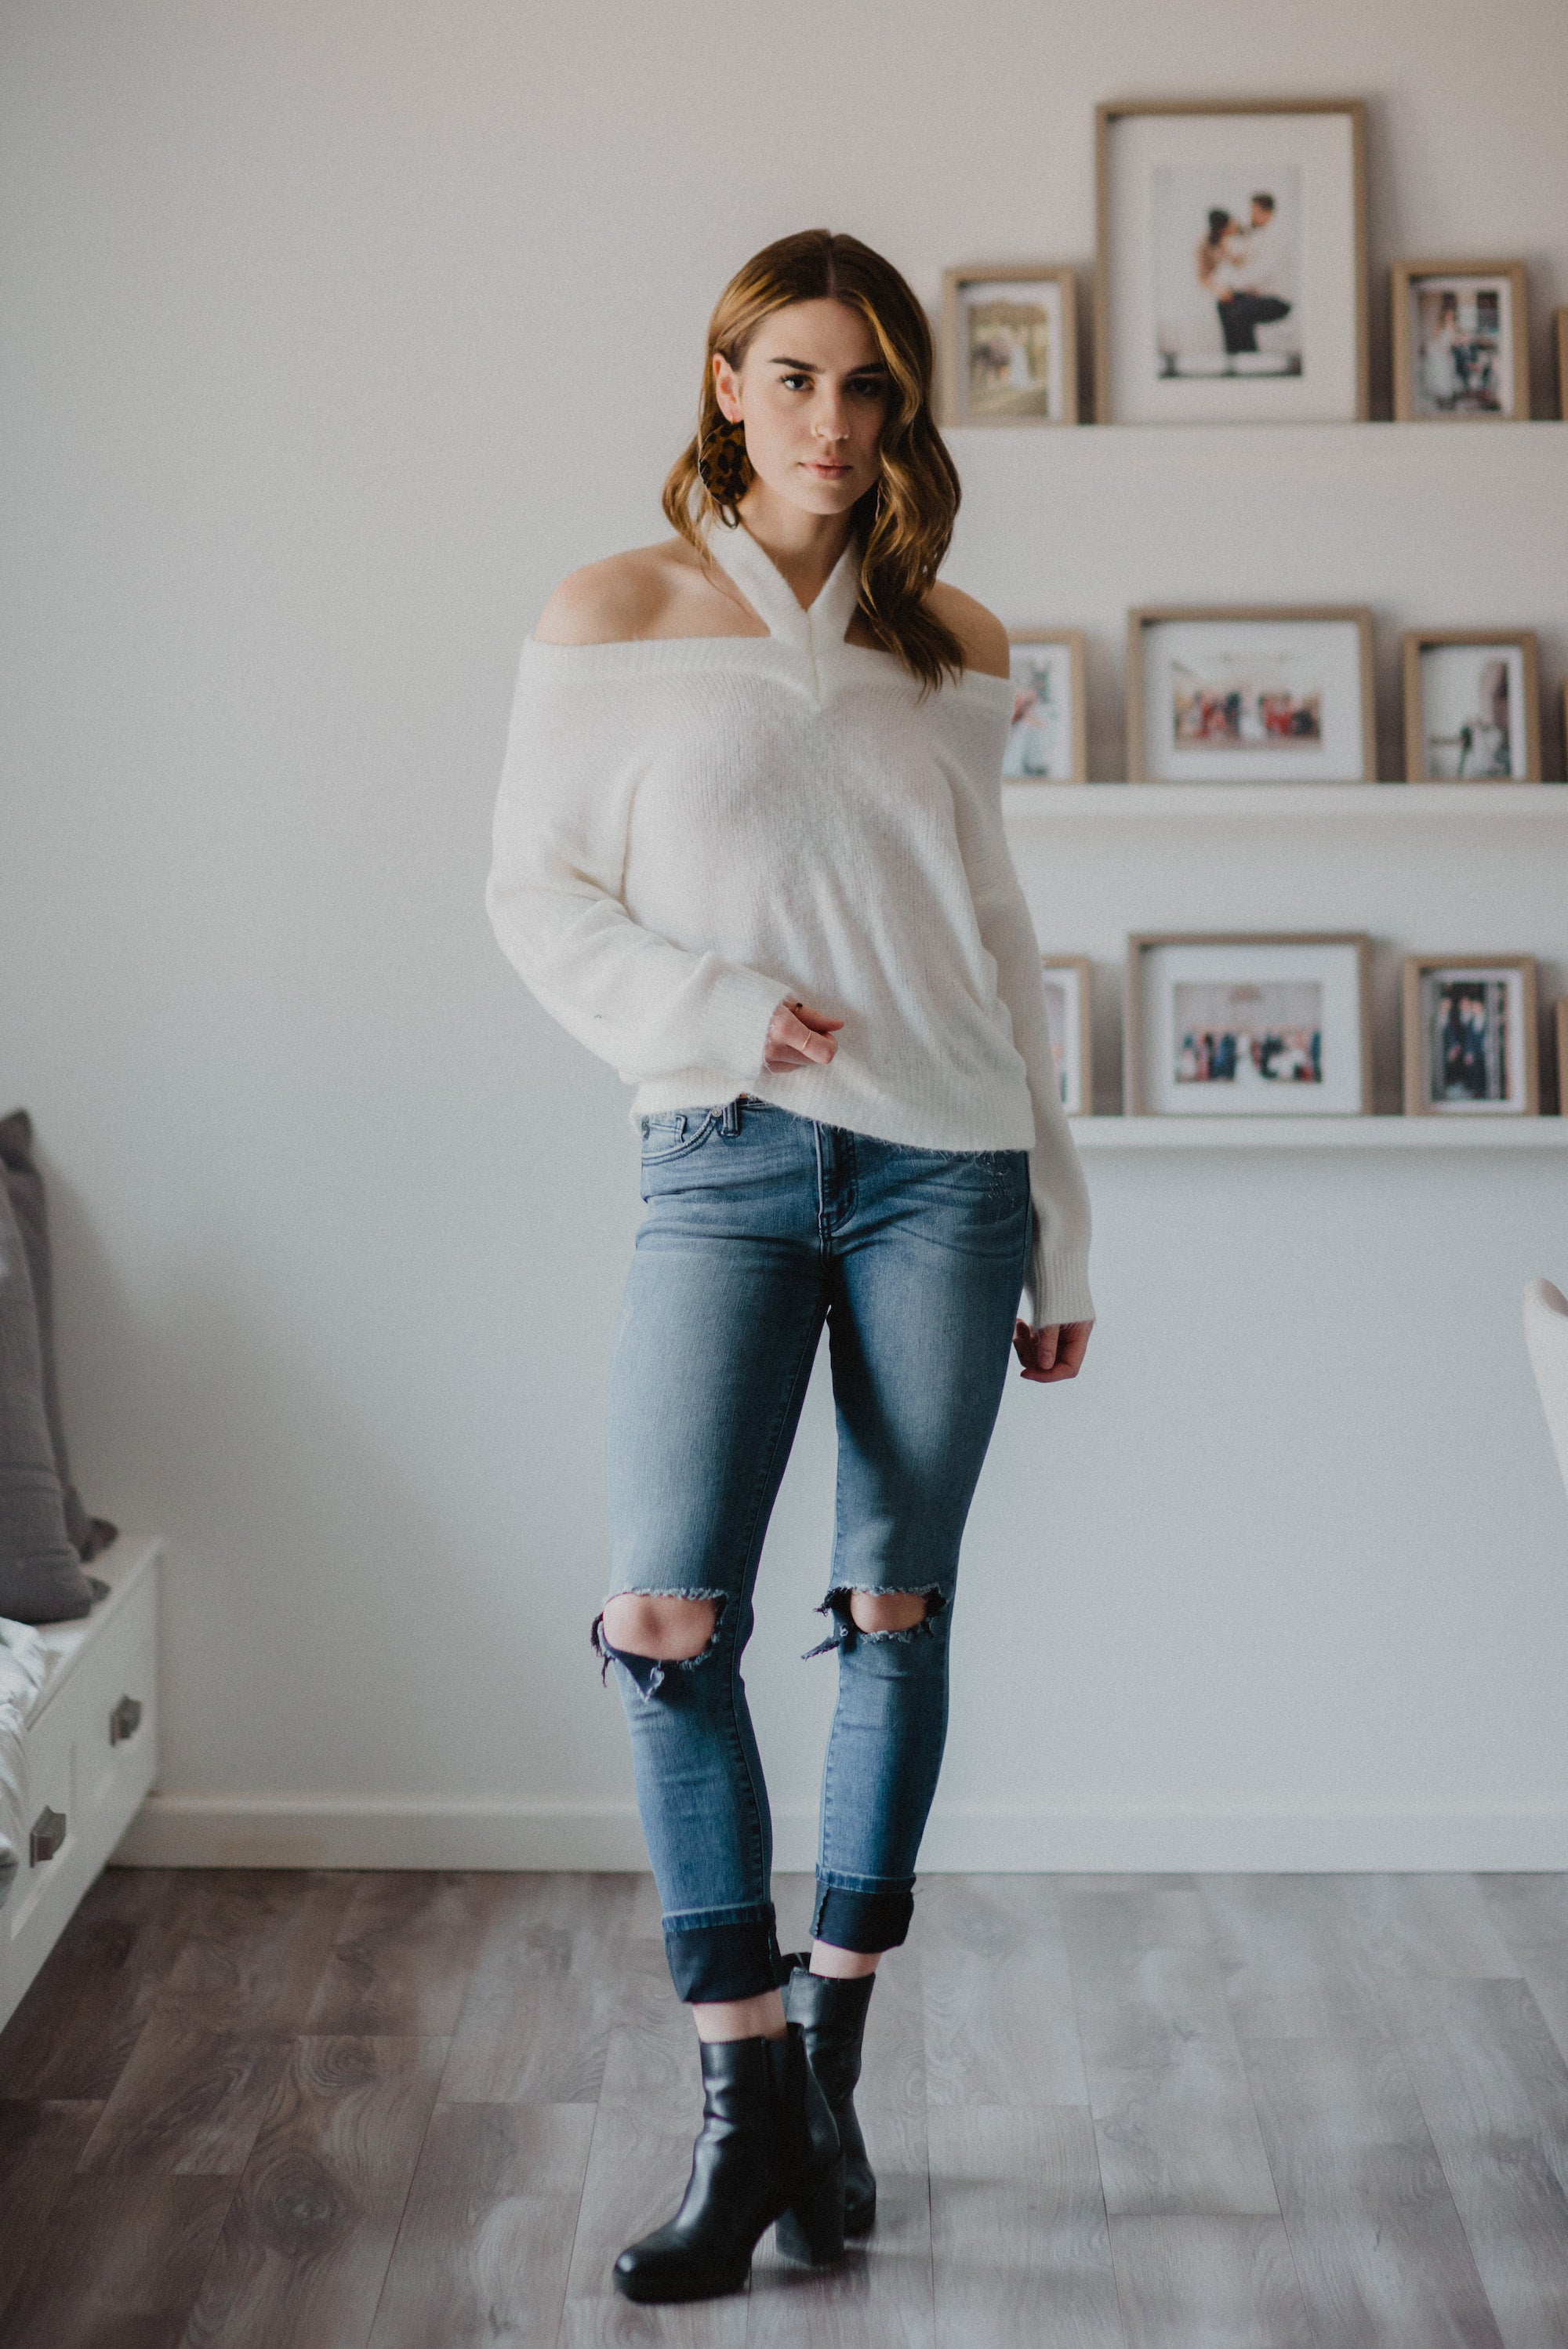 Winter White Off the Shoulder Sweater / FINAL SALE